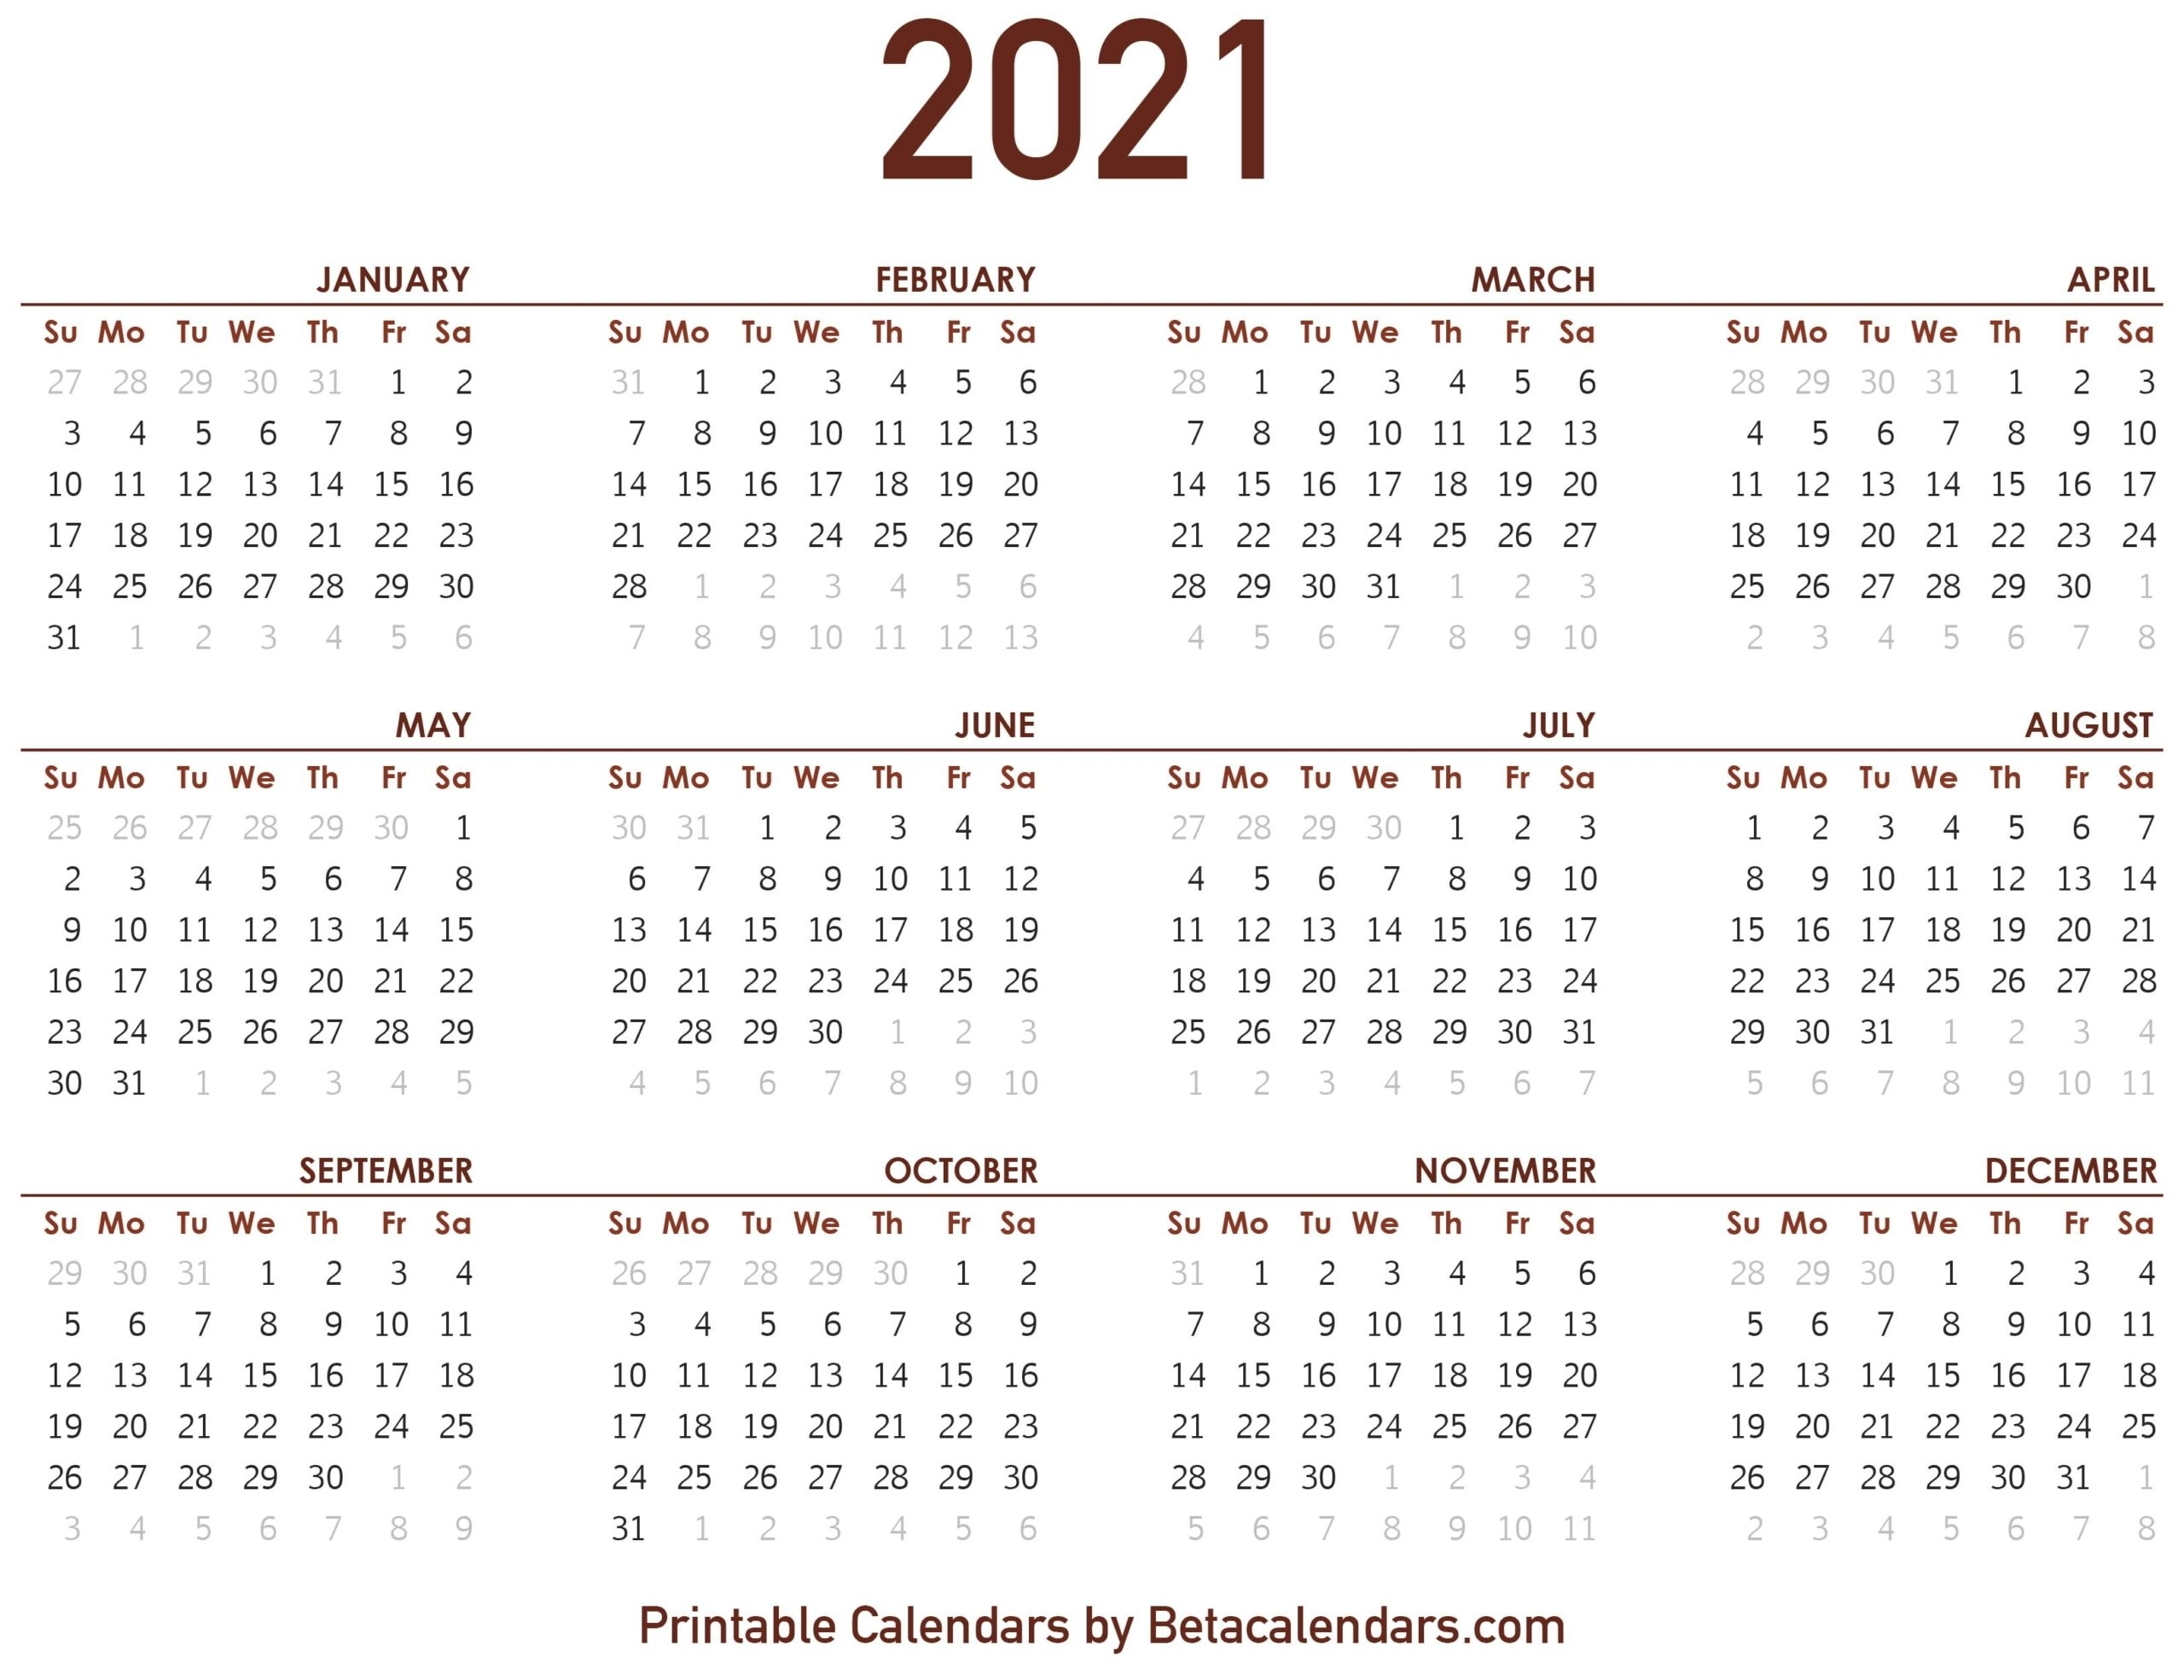 Calendar Printouts For The Rest Of 2021